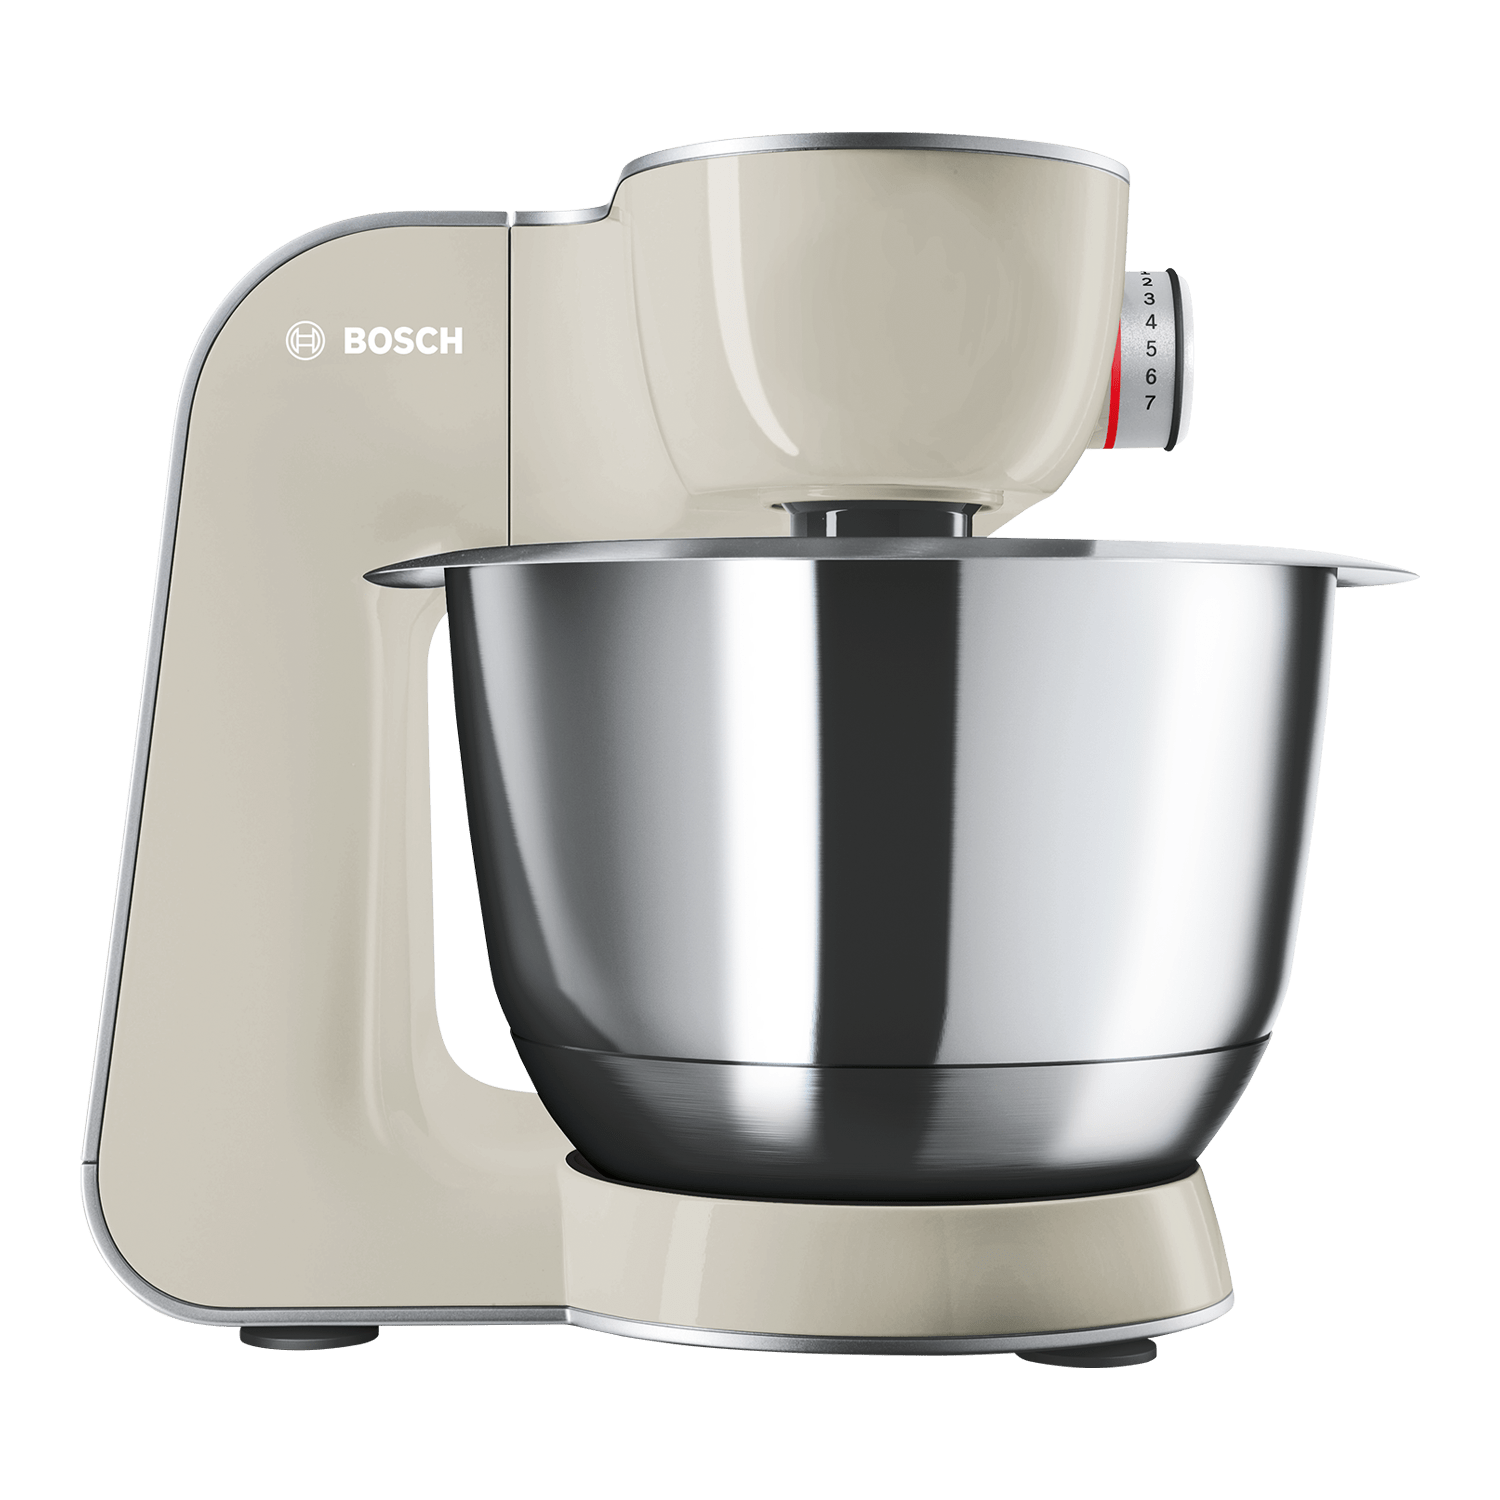 Küchenmaschine Bosch Vs Kitchenaid Bosch Mum5 Creationline Universal Kitchen Machine Mum58l20